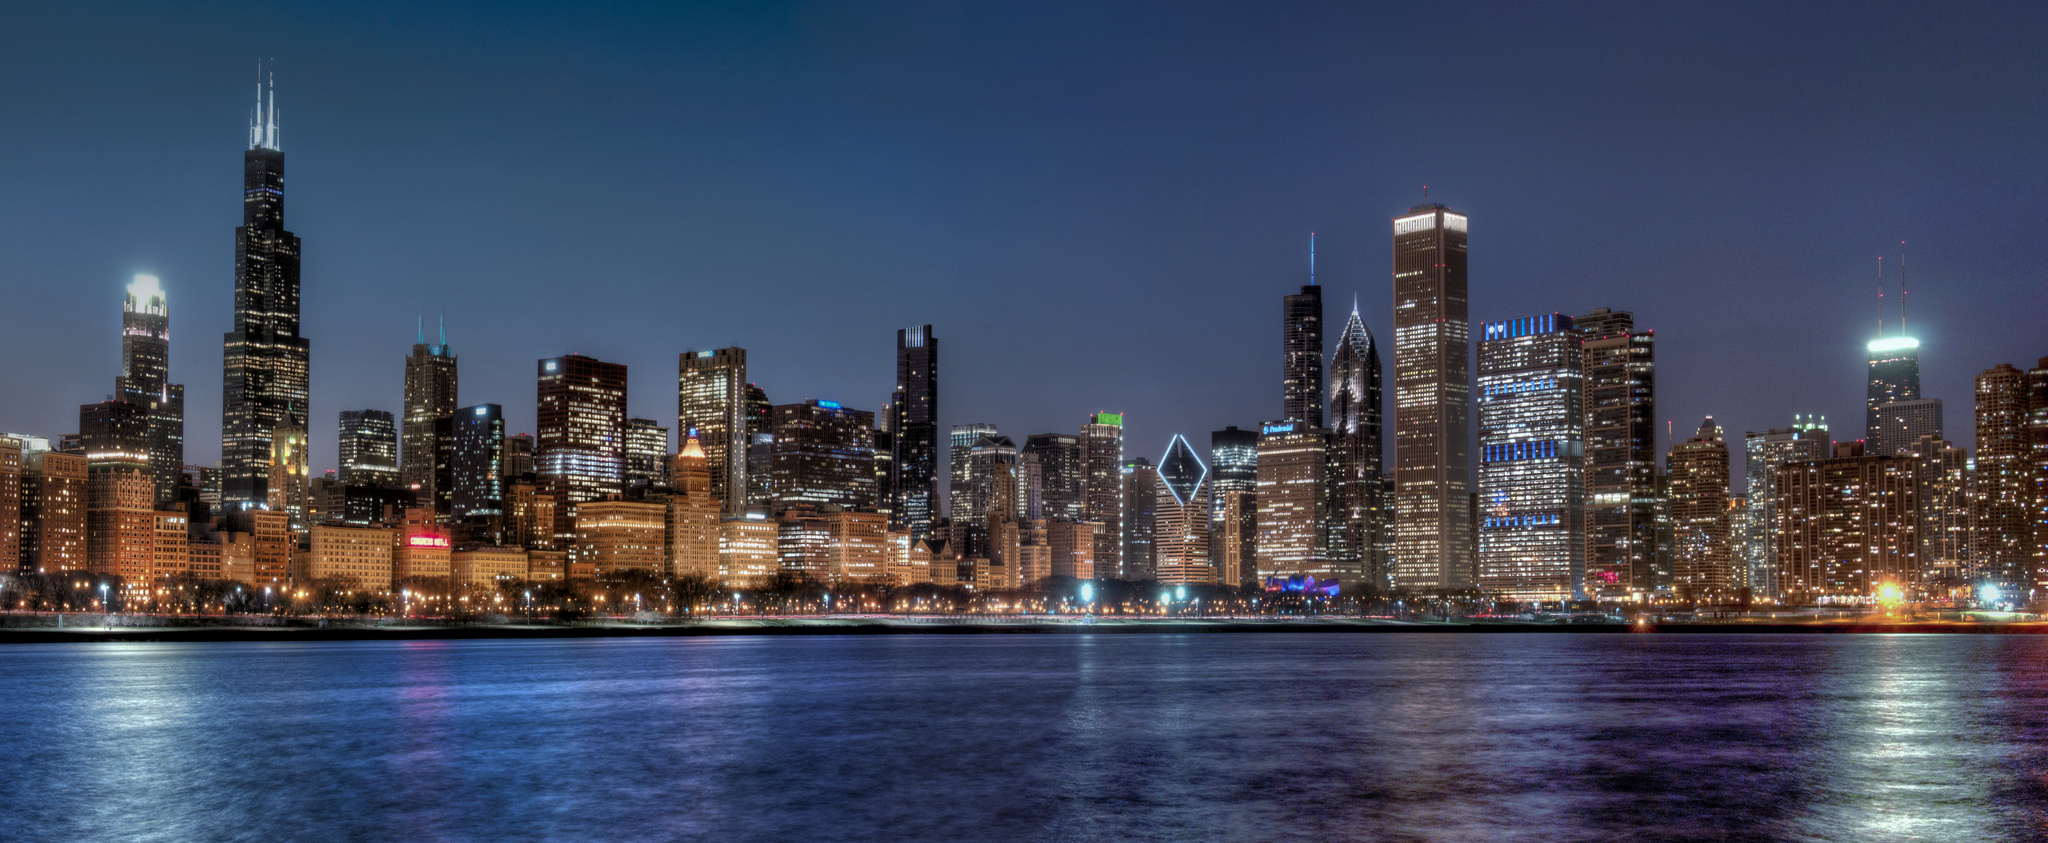 Chicago Travel Guide Video